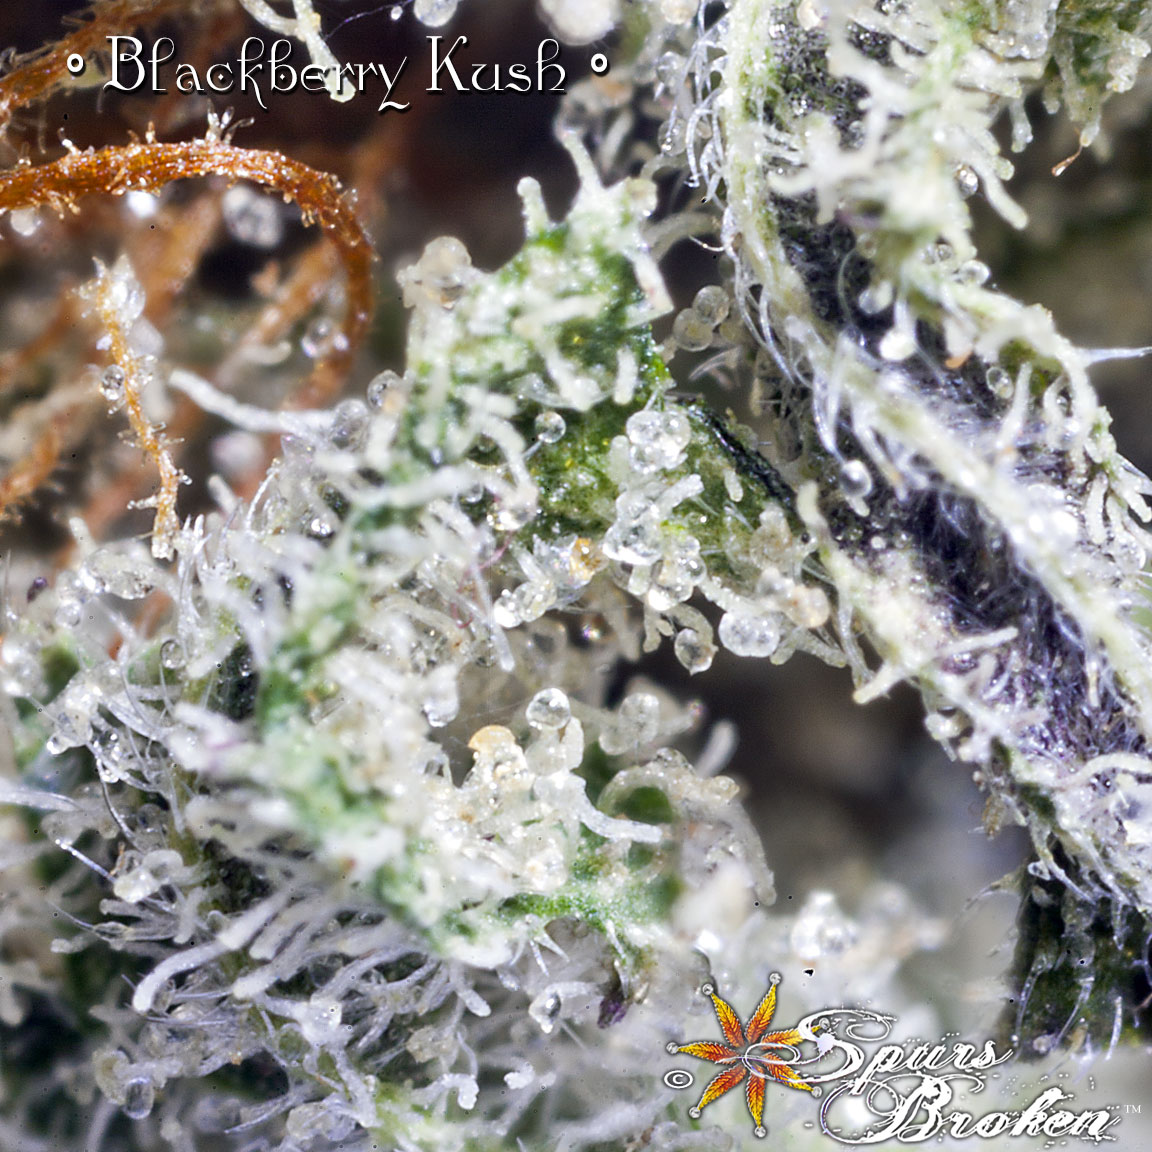 Blackberry Kush - Cannabis Macro Photography by Spurs Broken (Robert R. Sanders)